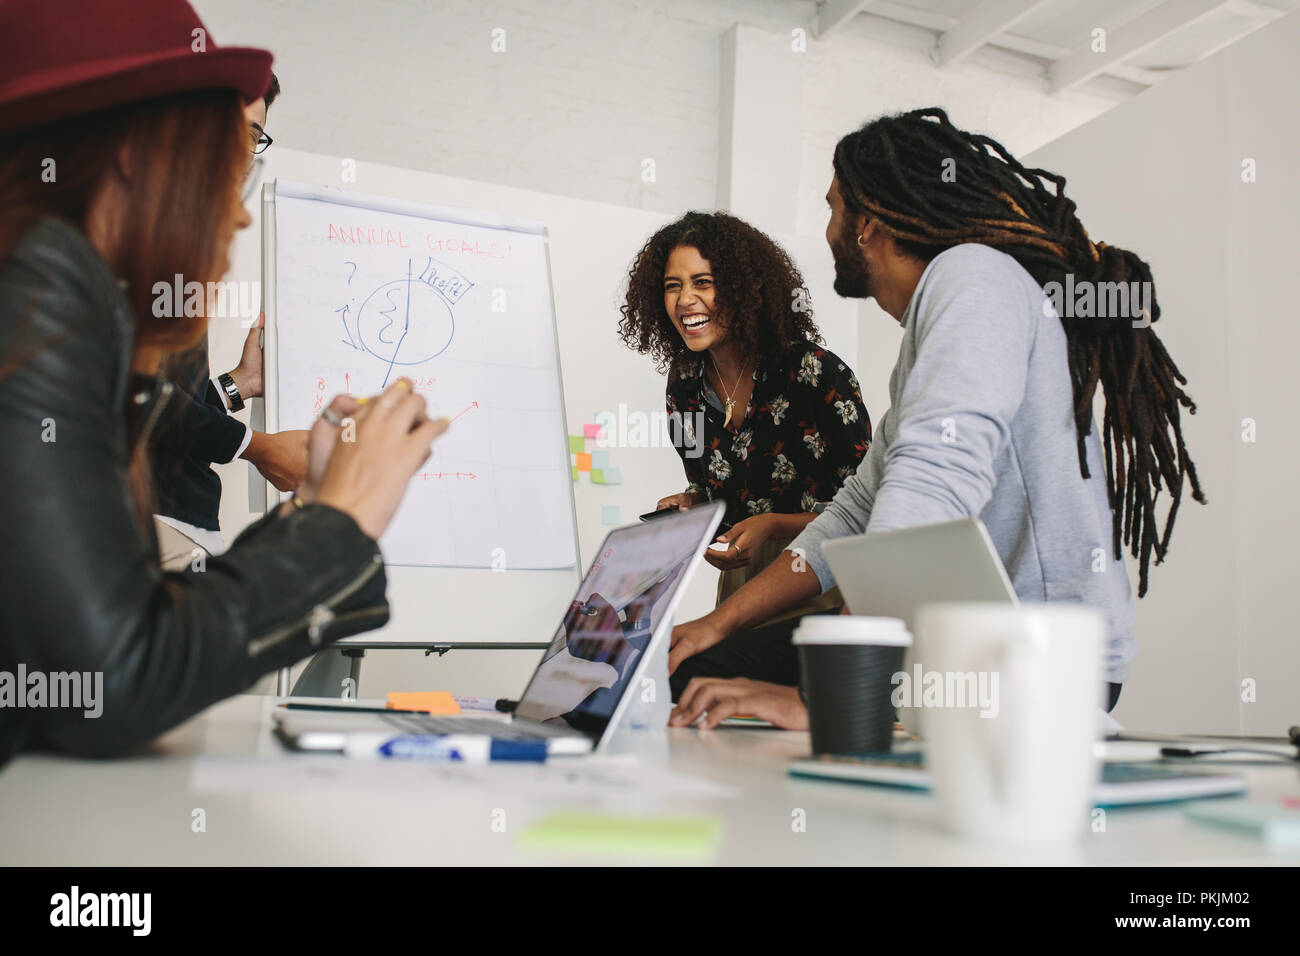 Business colleagues having fun during a meeting in office. Entrepreneurs discussing business plans on a flip chart board in meeting room. - Stock Image